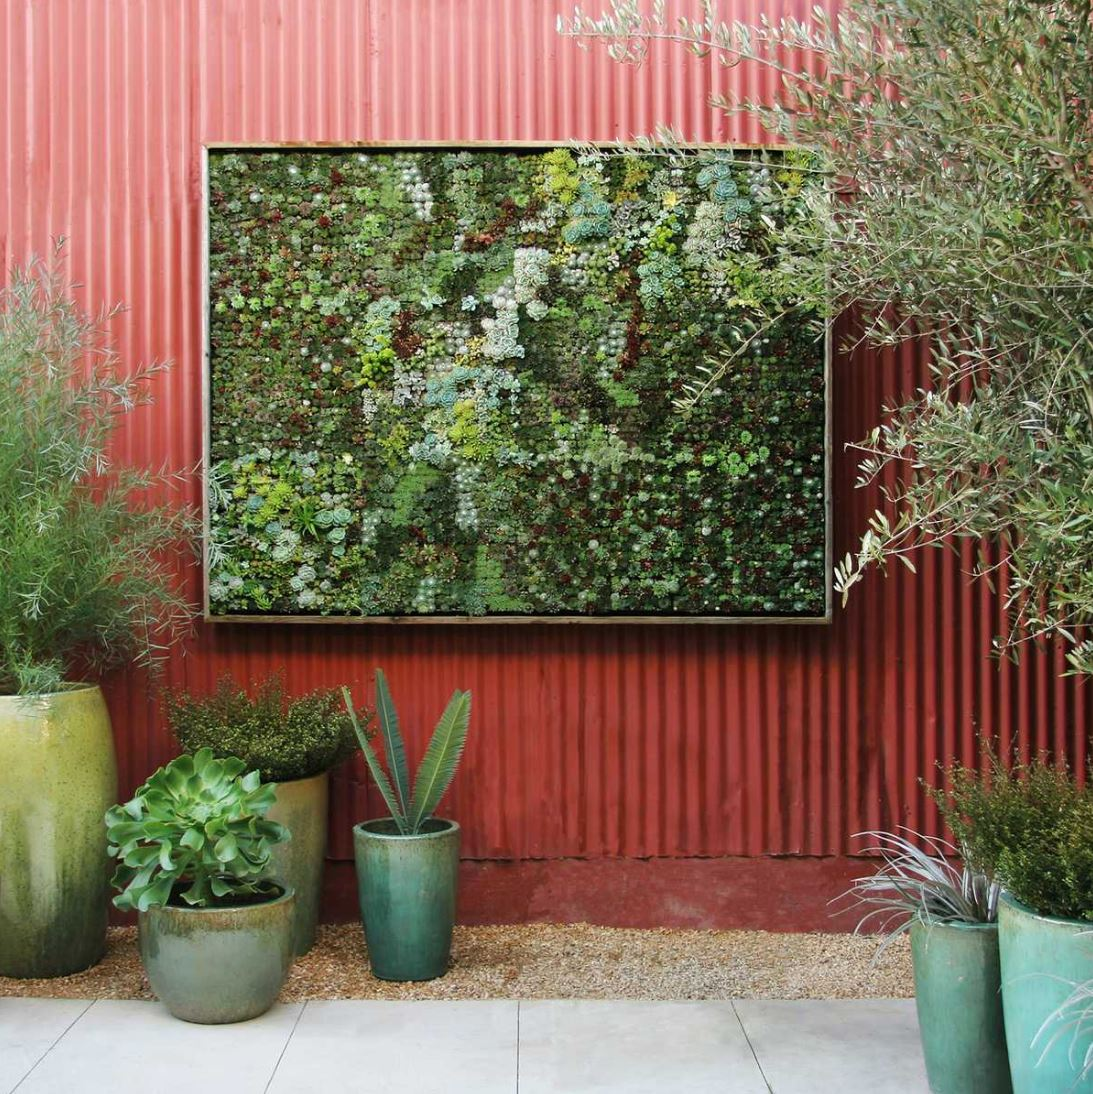 Vertikal Gardinen Think Green 20 Vertical Garden Ideas